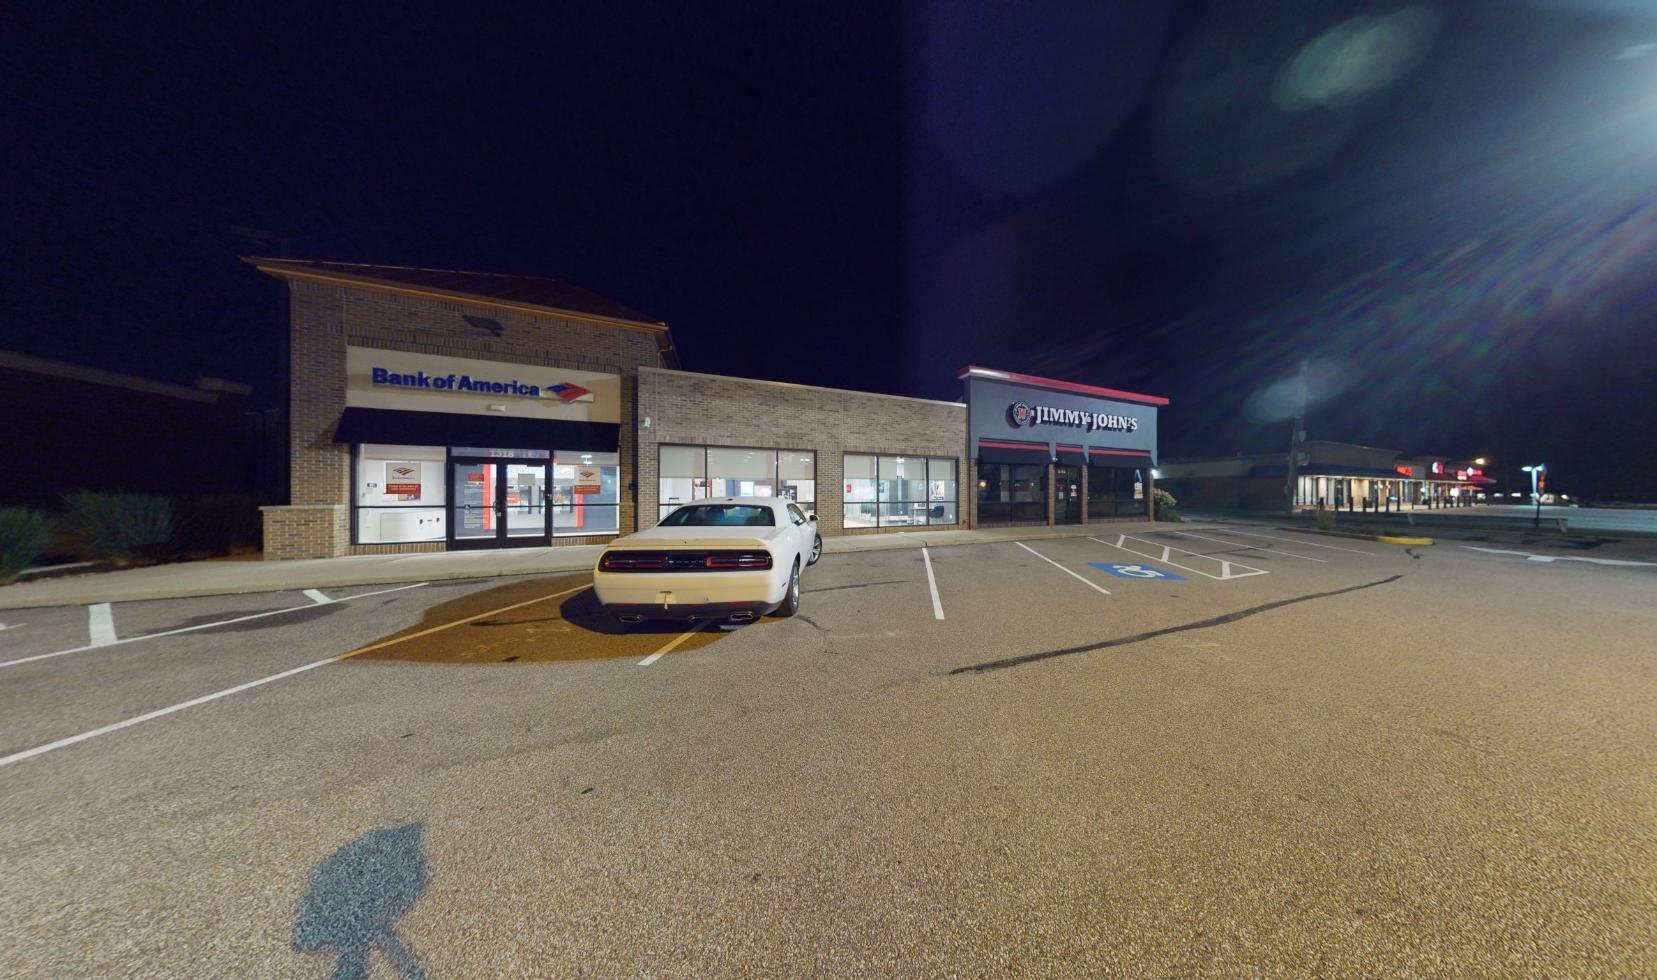 Bank of America financial center with walk-up ATM | 1318 SOM Center Rd, Mayfield Heights, OH 44124